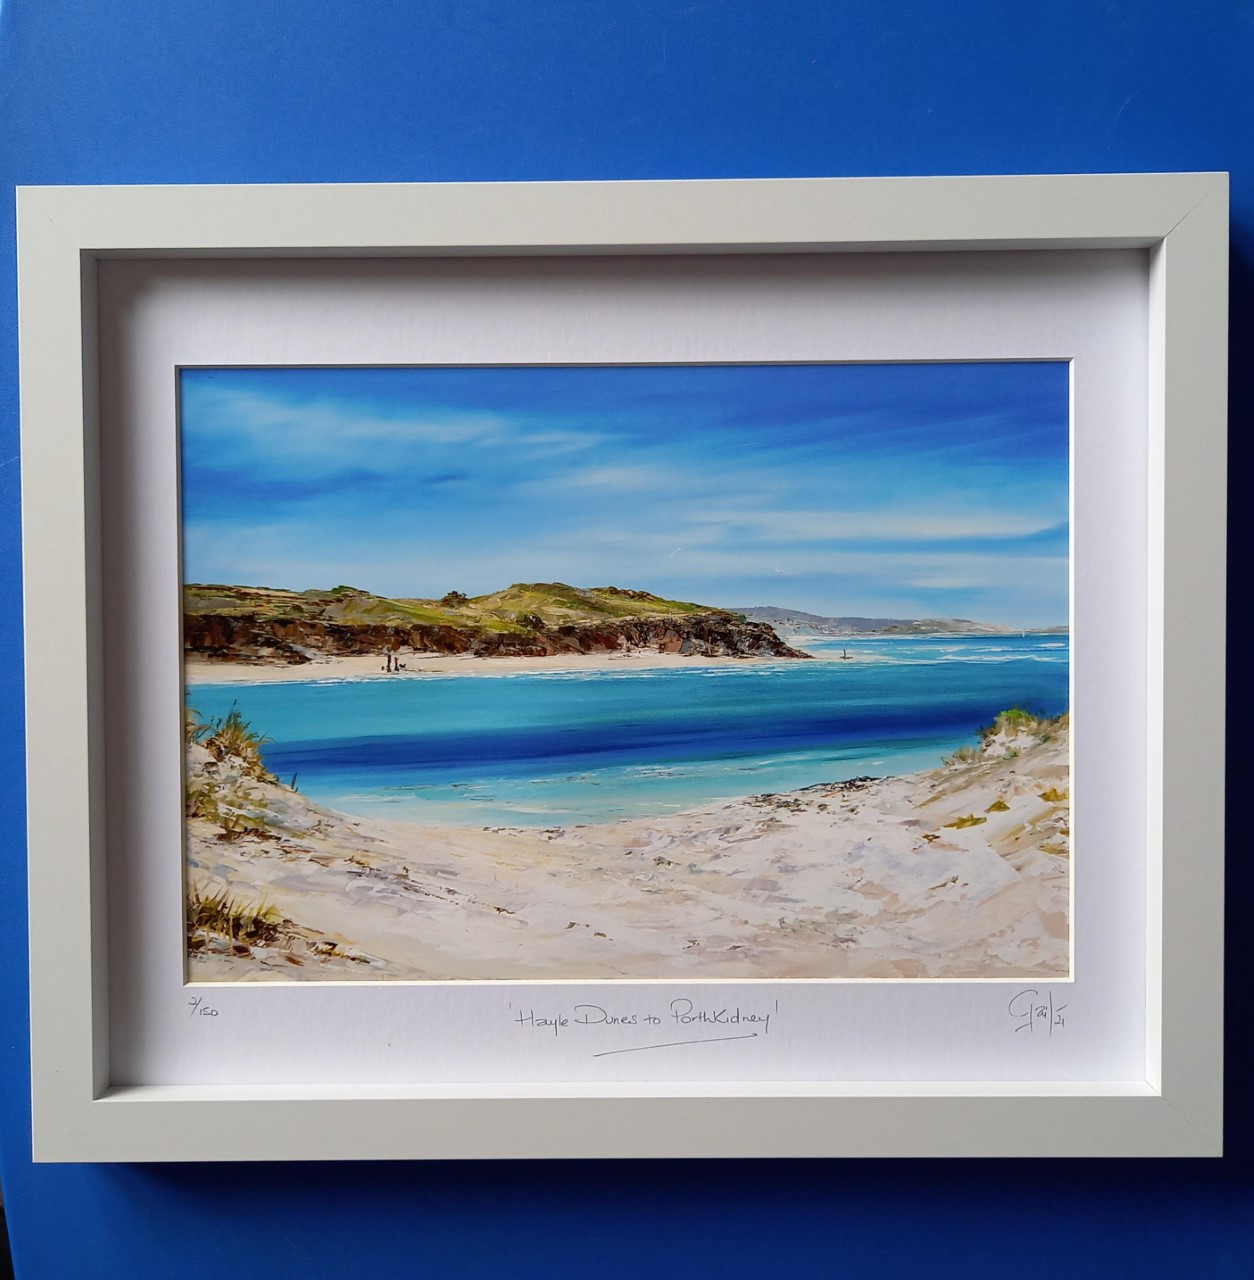 Hayle Dunes to Porthkidney Beach Framed Print £45 (inc P&P UK Mainland)